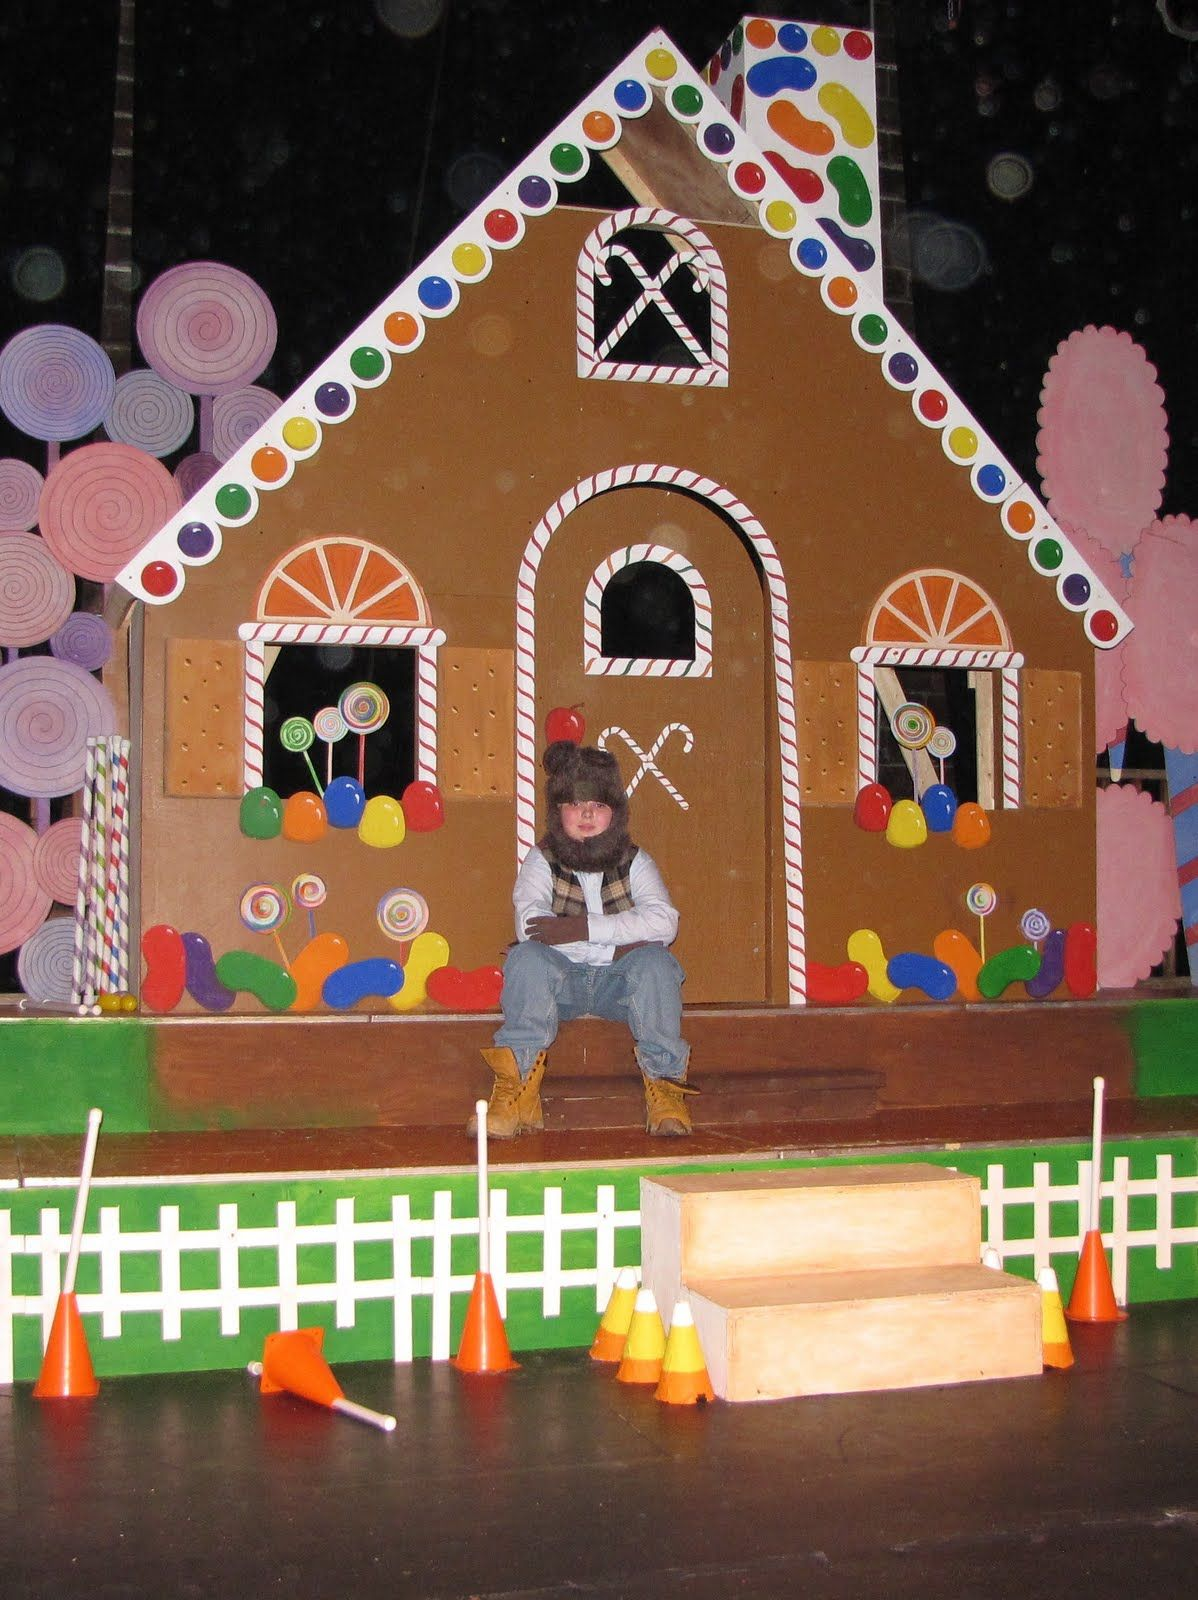 Gingerbread House Kids Art As The Candy And Use For Christmas Play Christmas Backdrops Christmas Door Decorations Candy Land Christmas